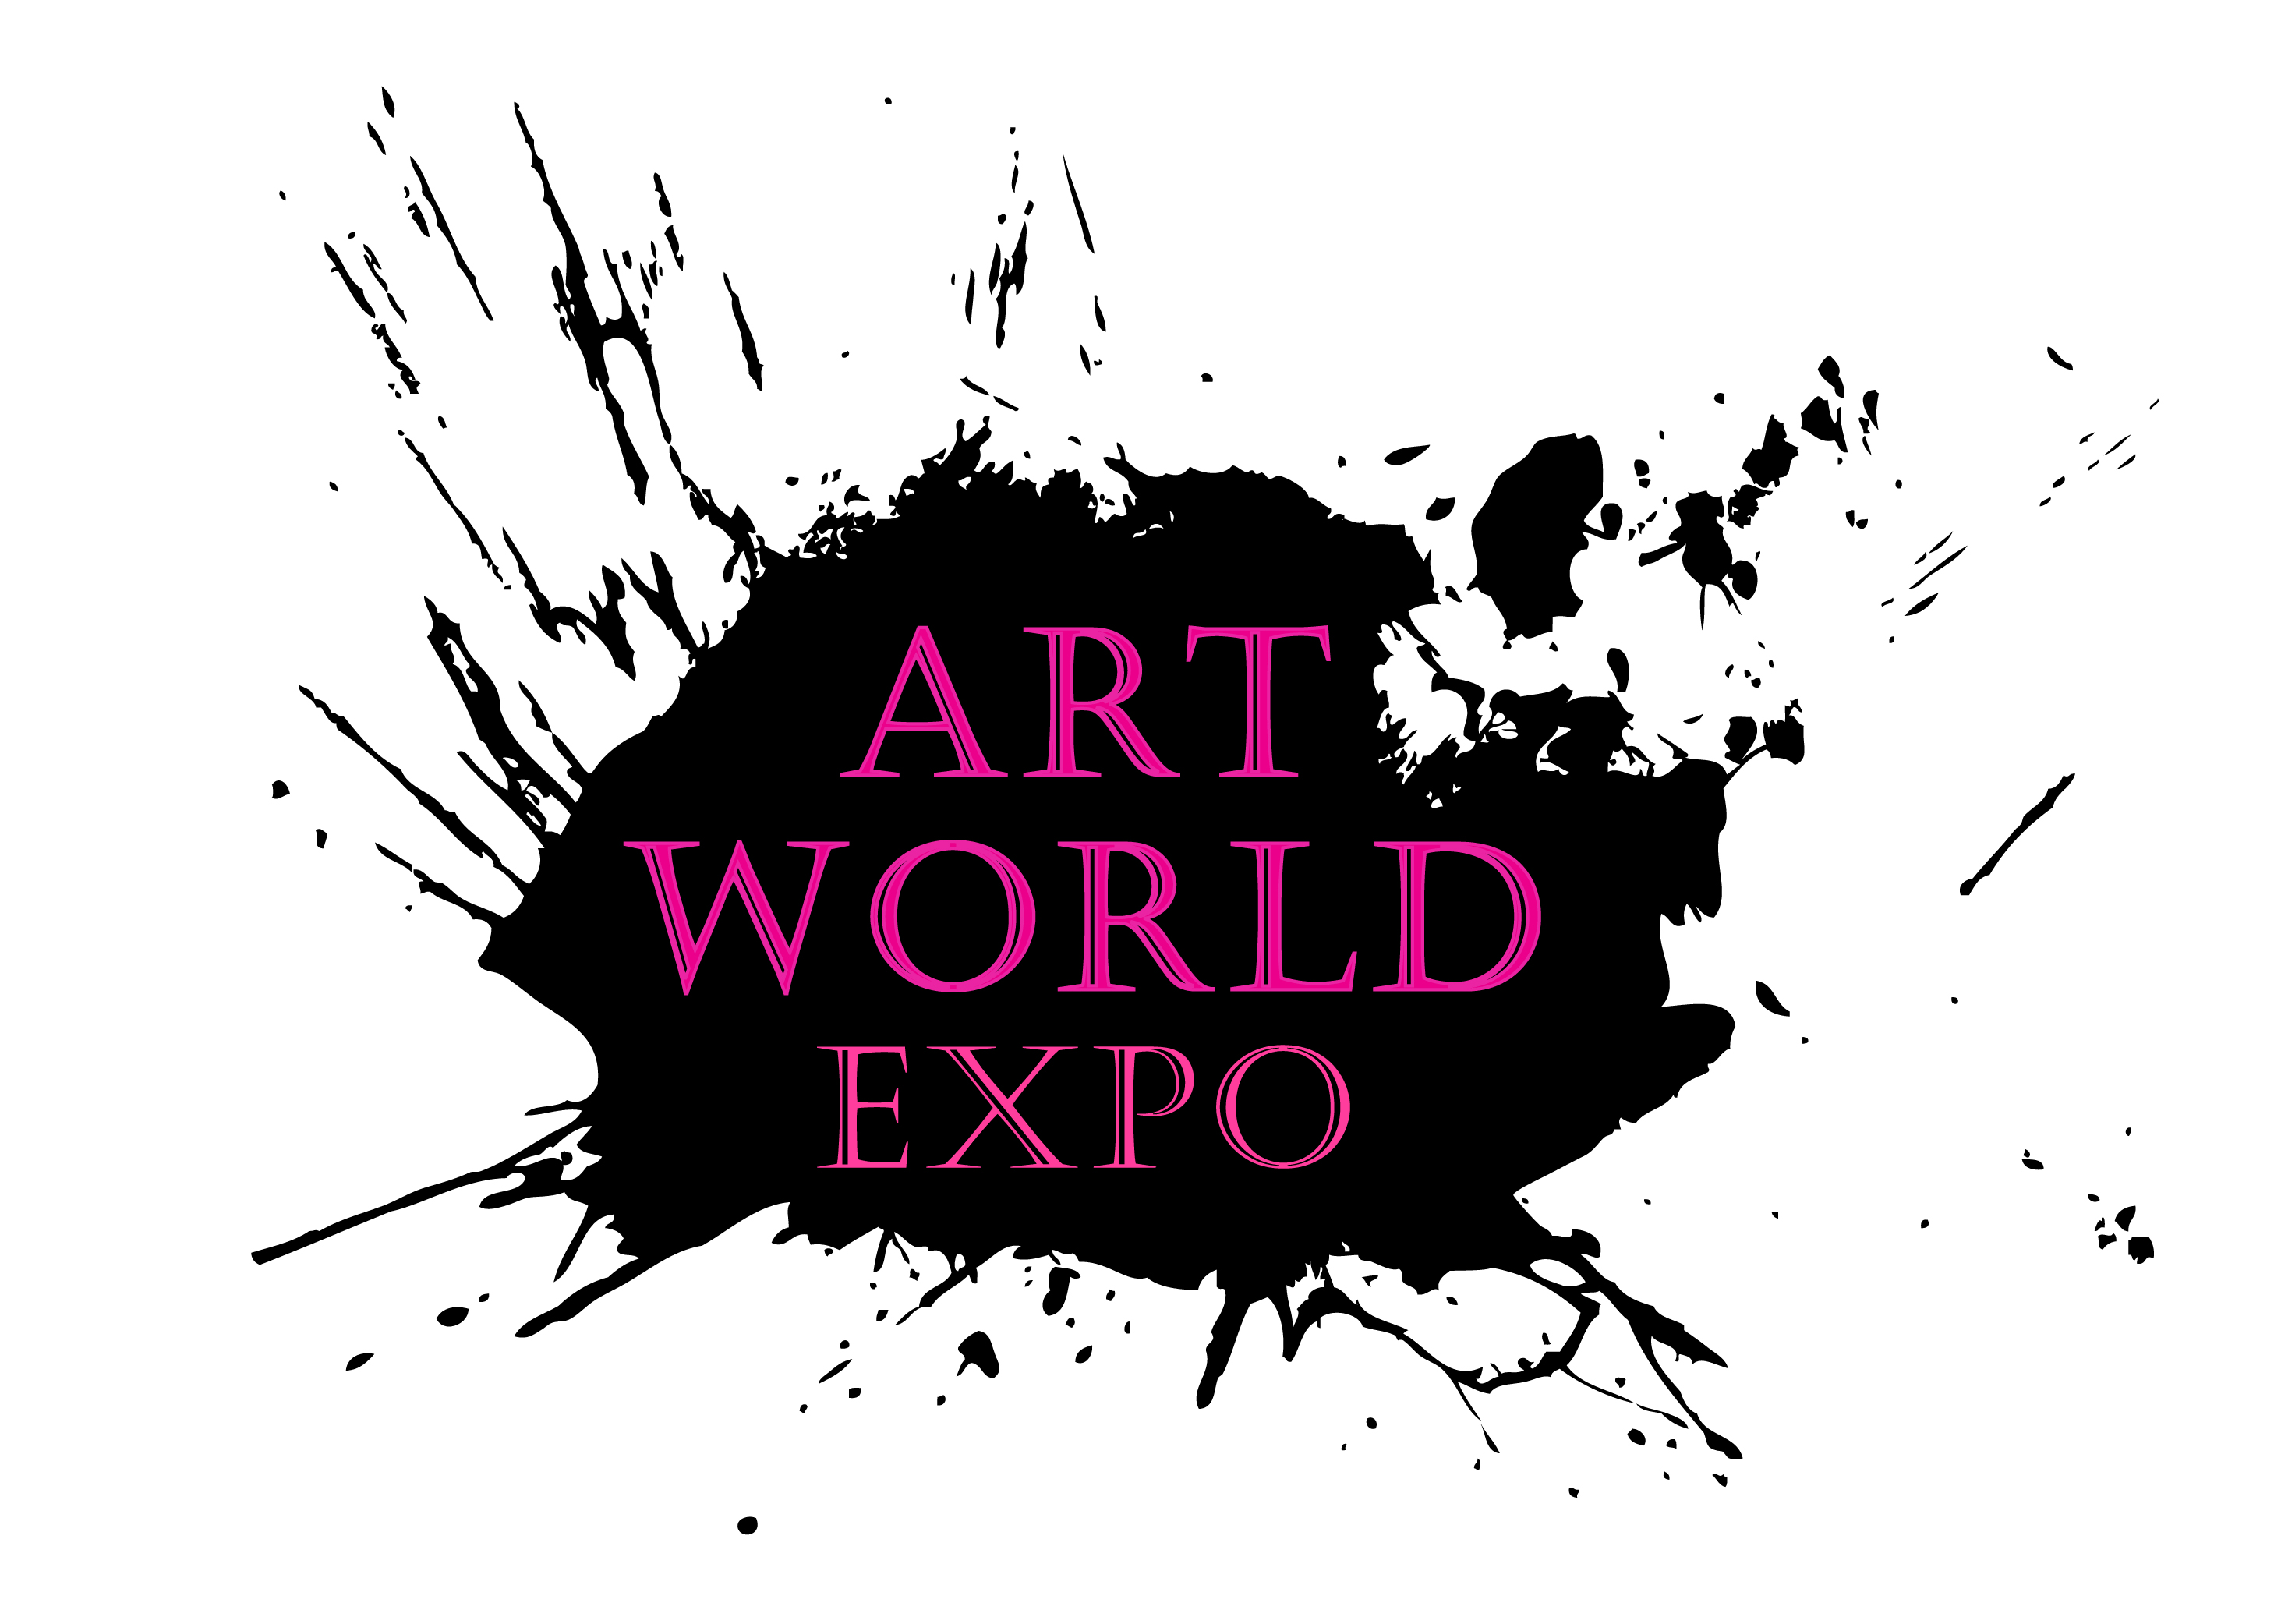 art world expo logo toronto